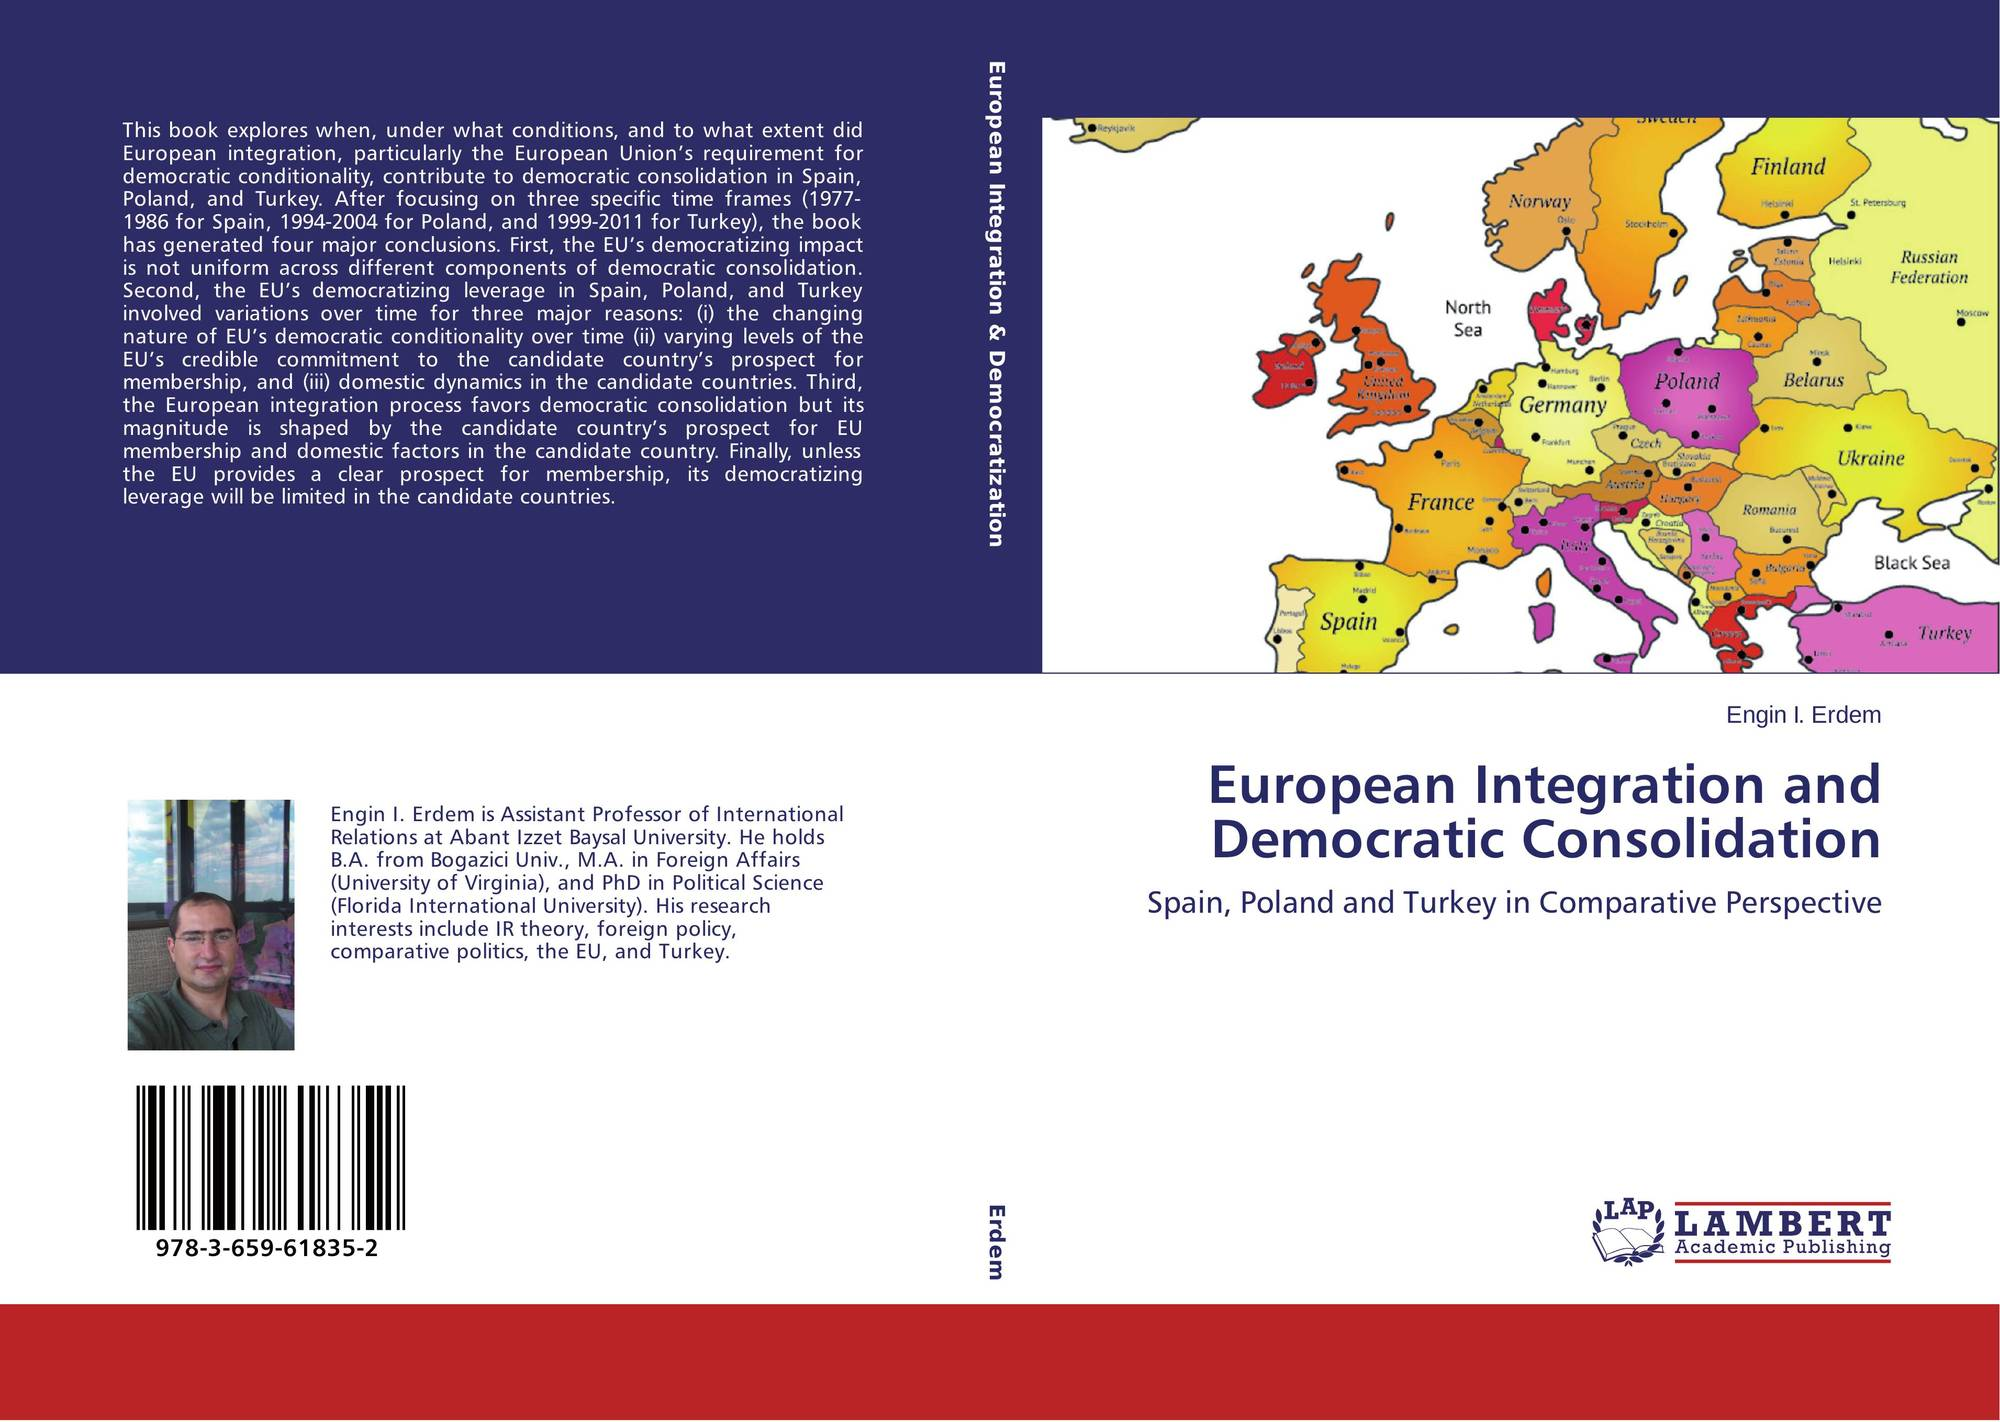 an evaluation of the impact of the european union from a democratic perspective Abstract this paper investigates the presence of political budget cycles (pbcs) in the european union using data from all 27 member states over the period 1997–2008, and explores their variability across countries and over time.